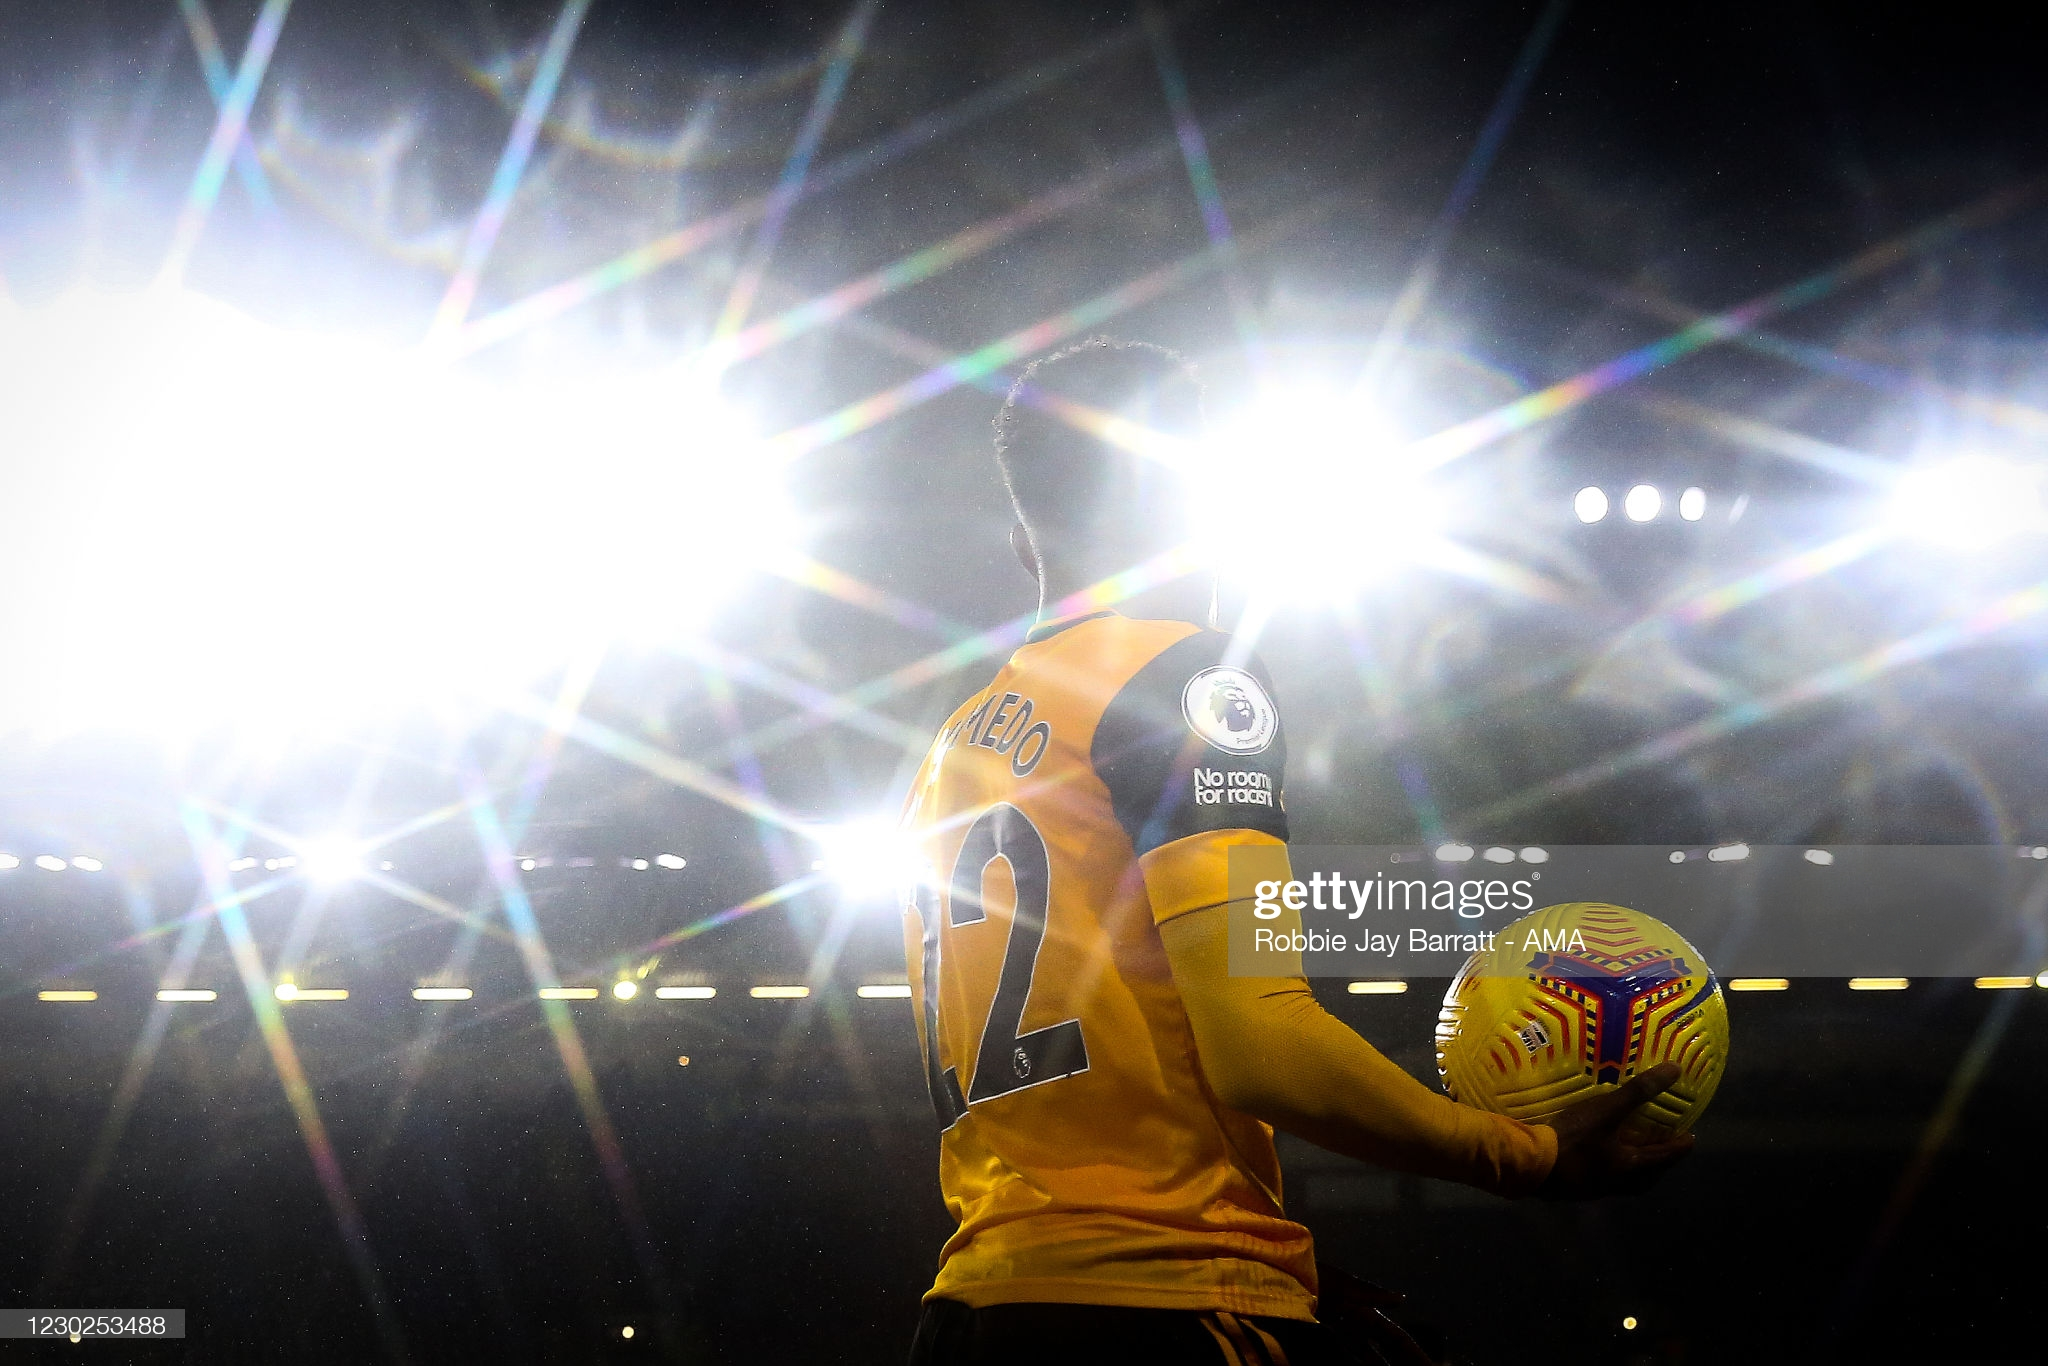 gettyimages-1230253488-2048x2048